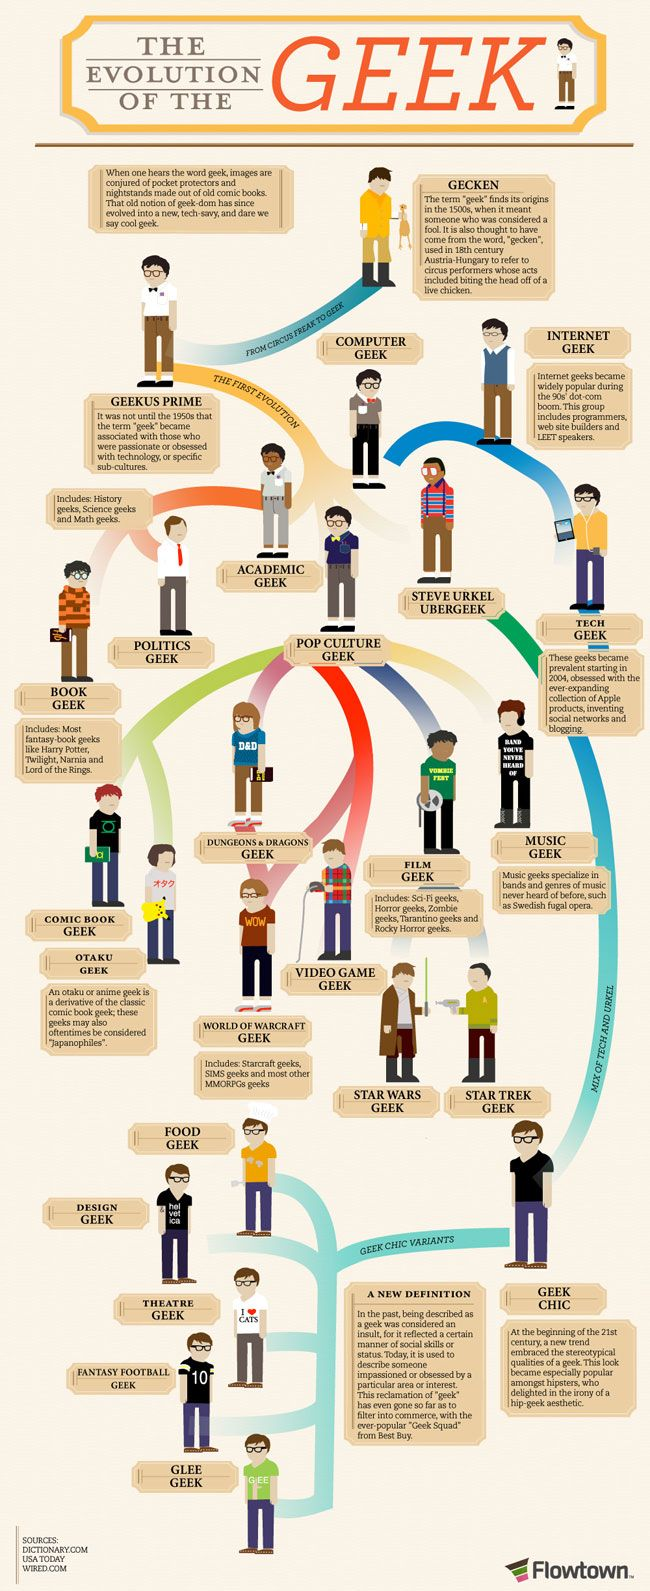 History of the Geek.